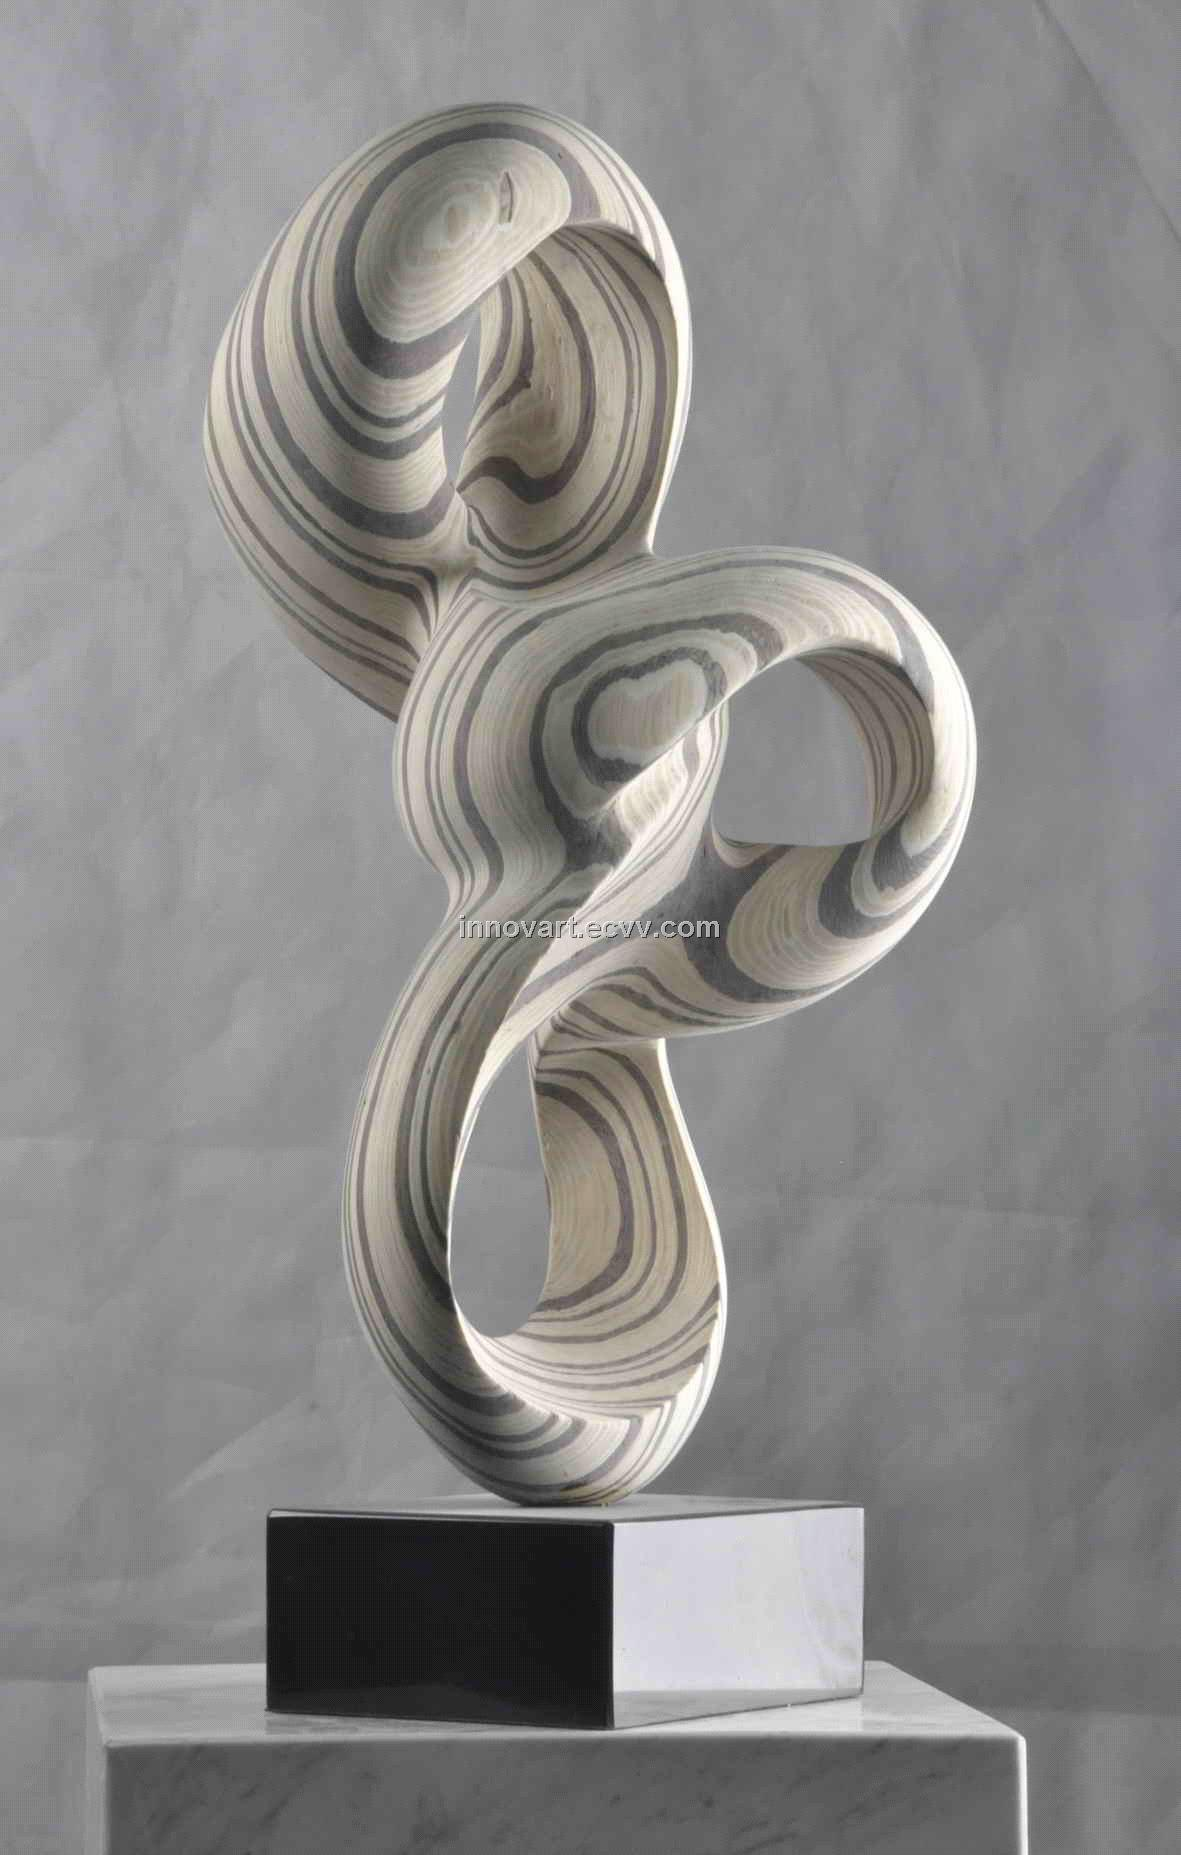 Abstract wood carvings sculpture purchasing souring